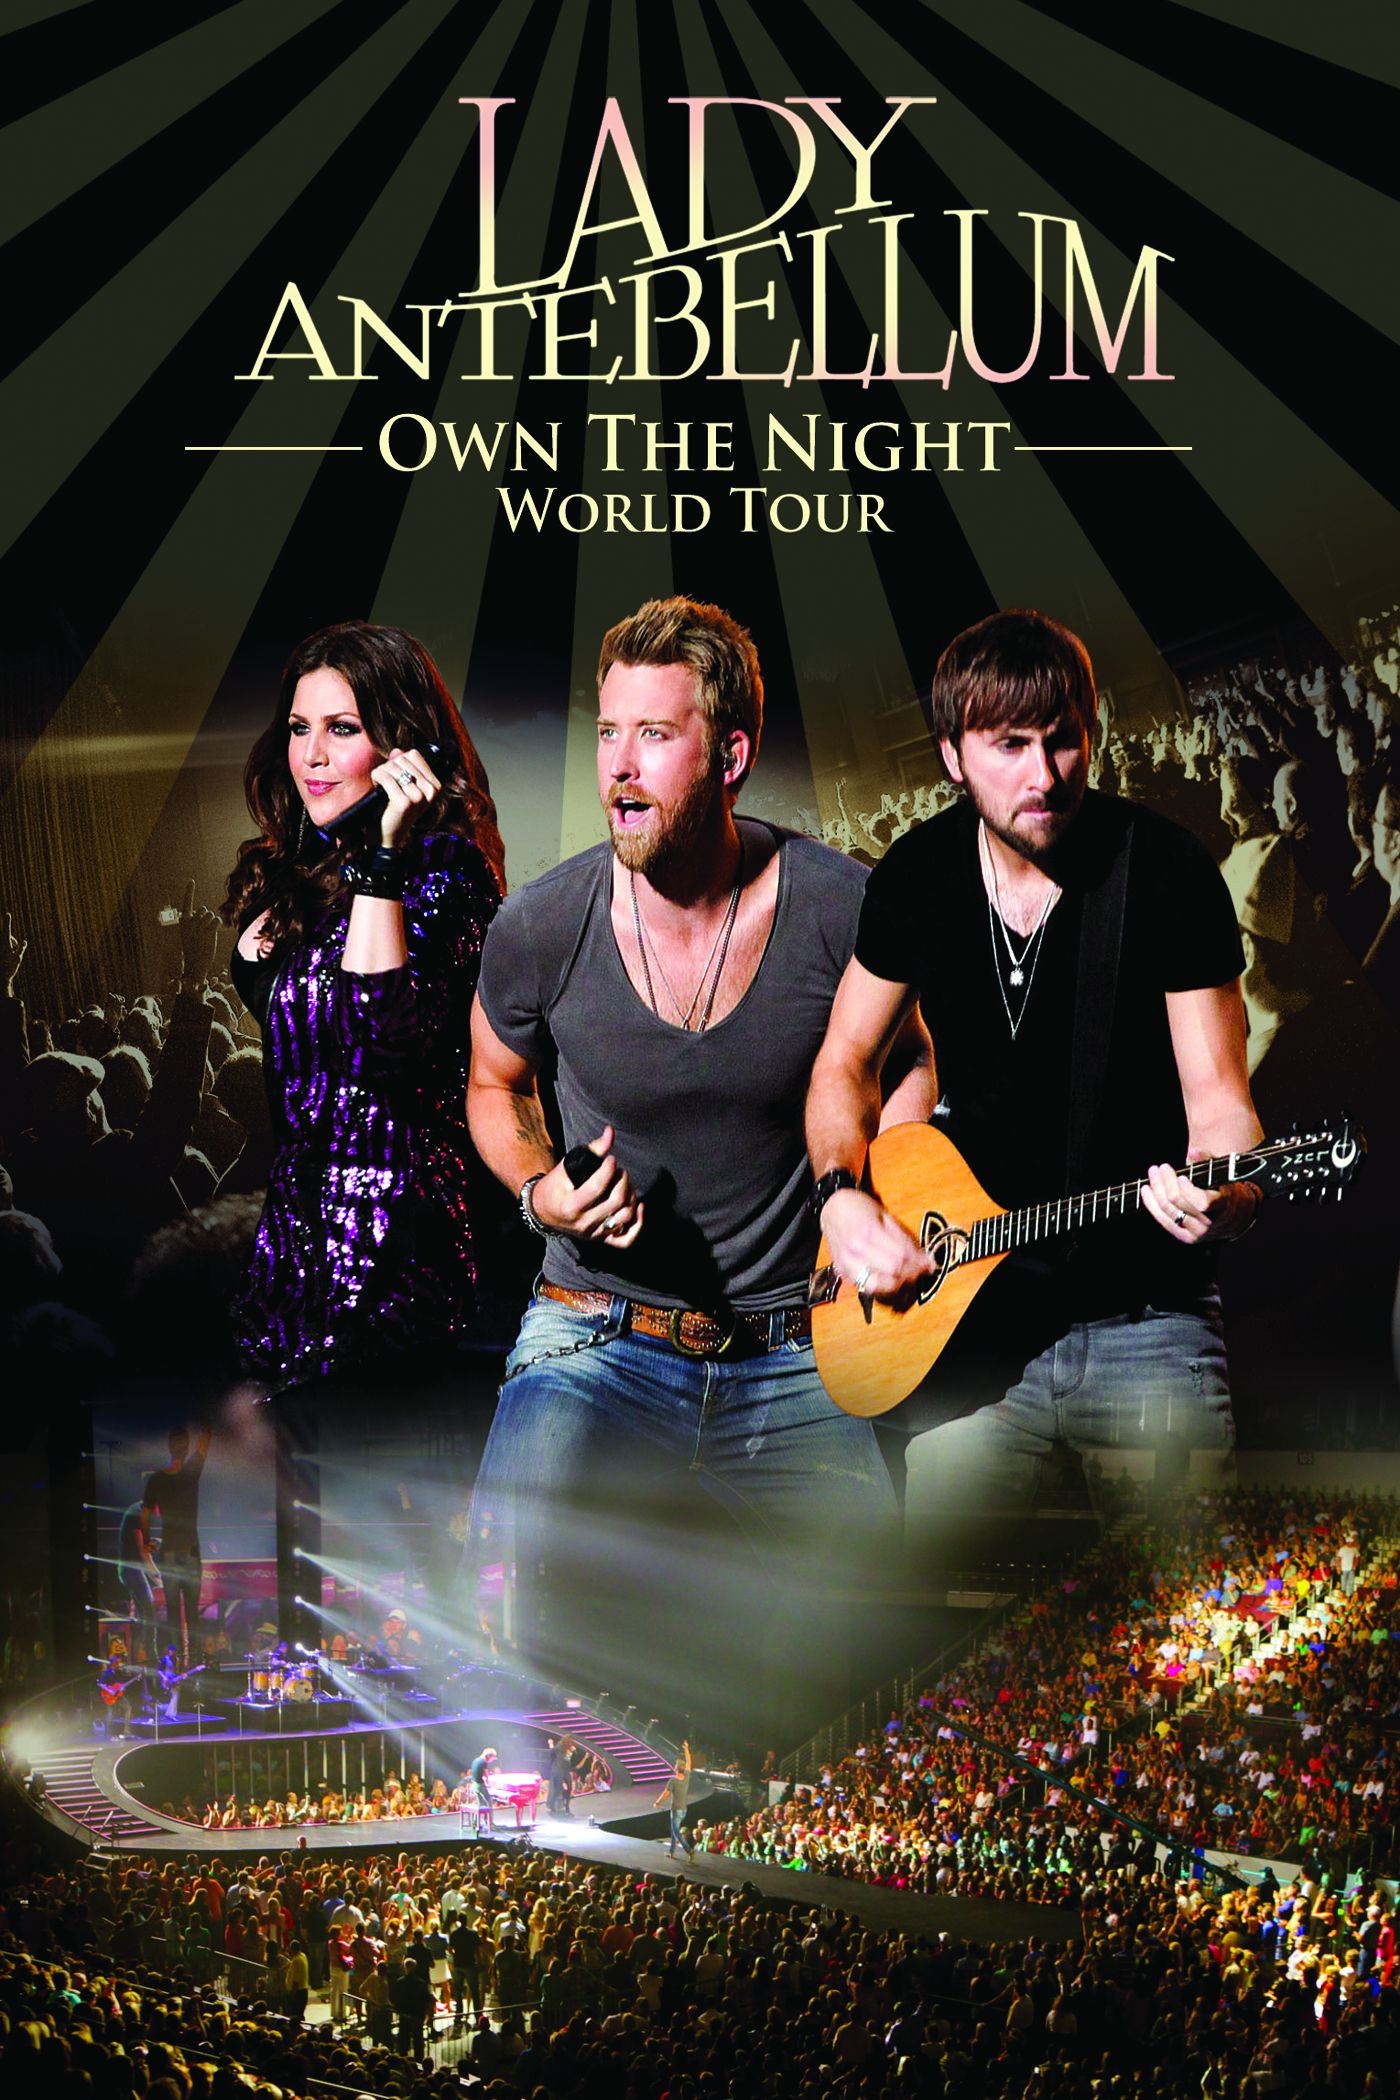 Lady Antebellum – Own the Night World (2012) [iTunes Movie - Full HD]